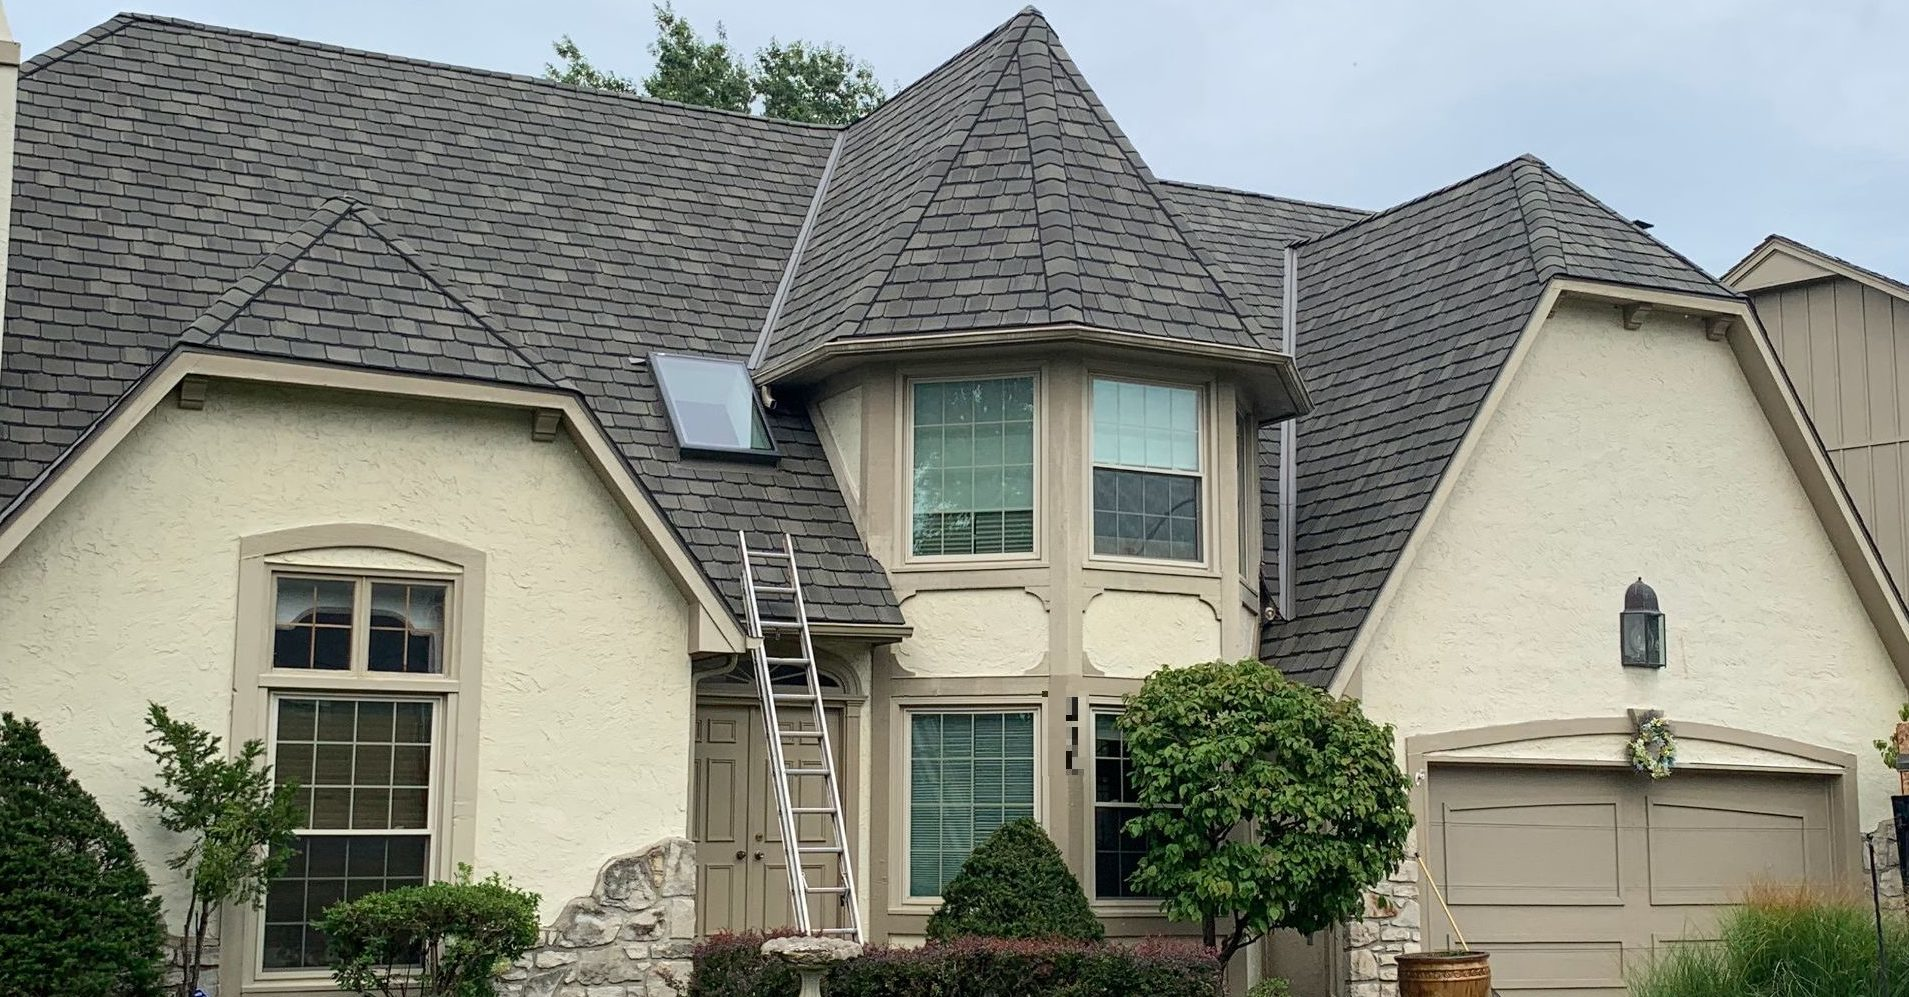 Buck Roofing - residential roofing - kansas and missouri - cetainteed grand manor - weathered wood